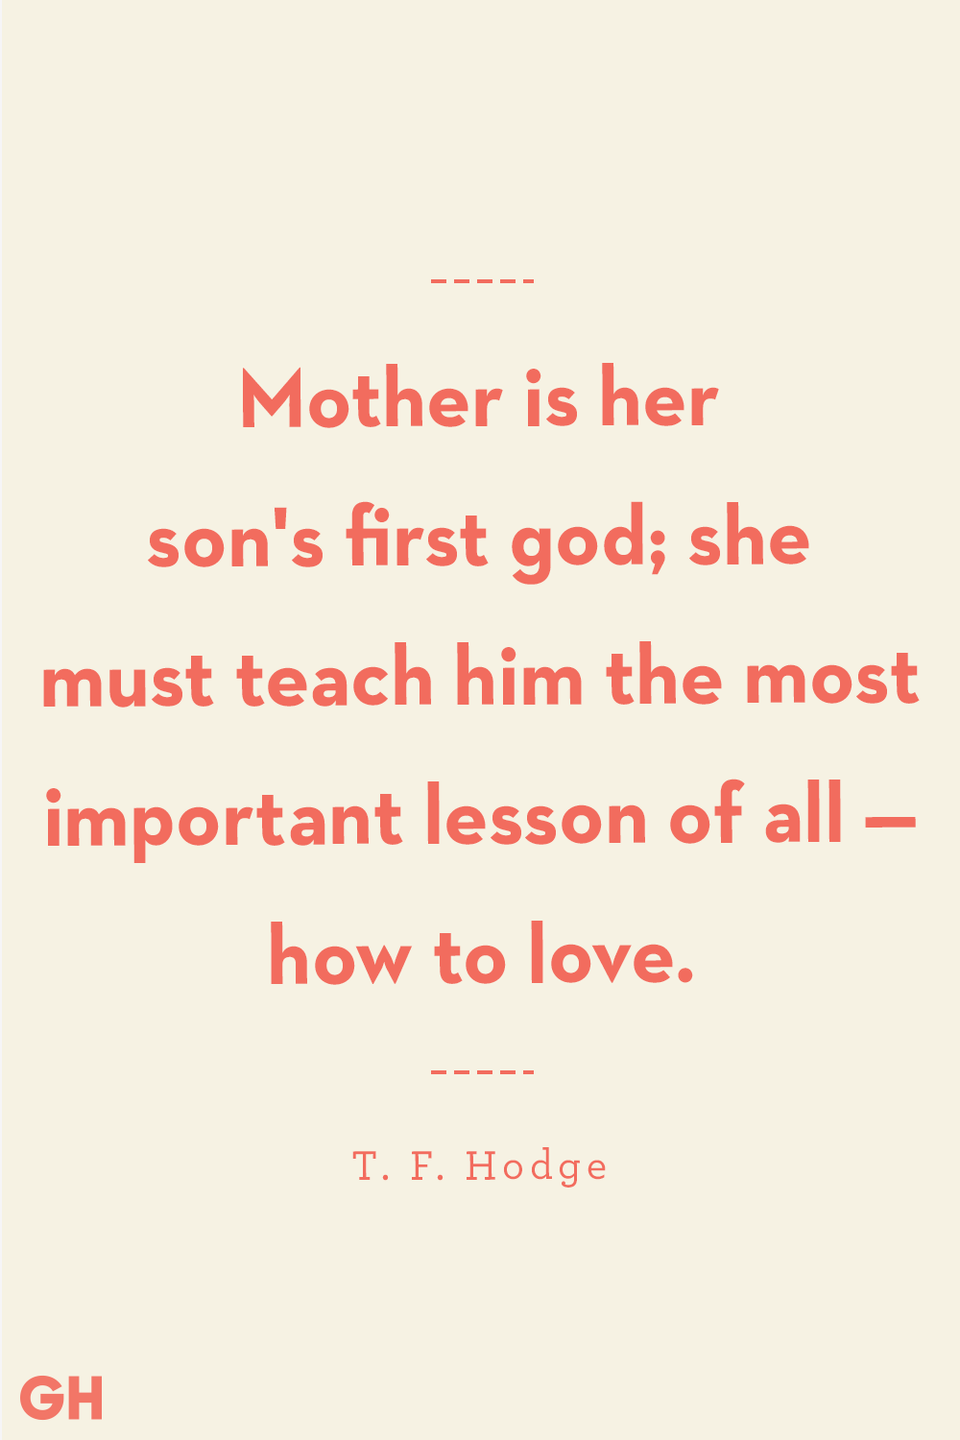 <p>Mother is her son's first god; she must teach him the most important lesson of all — how to love.</p>